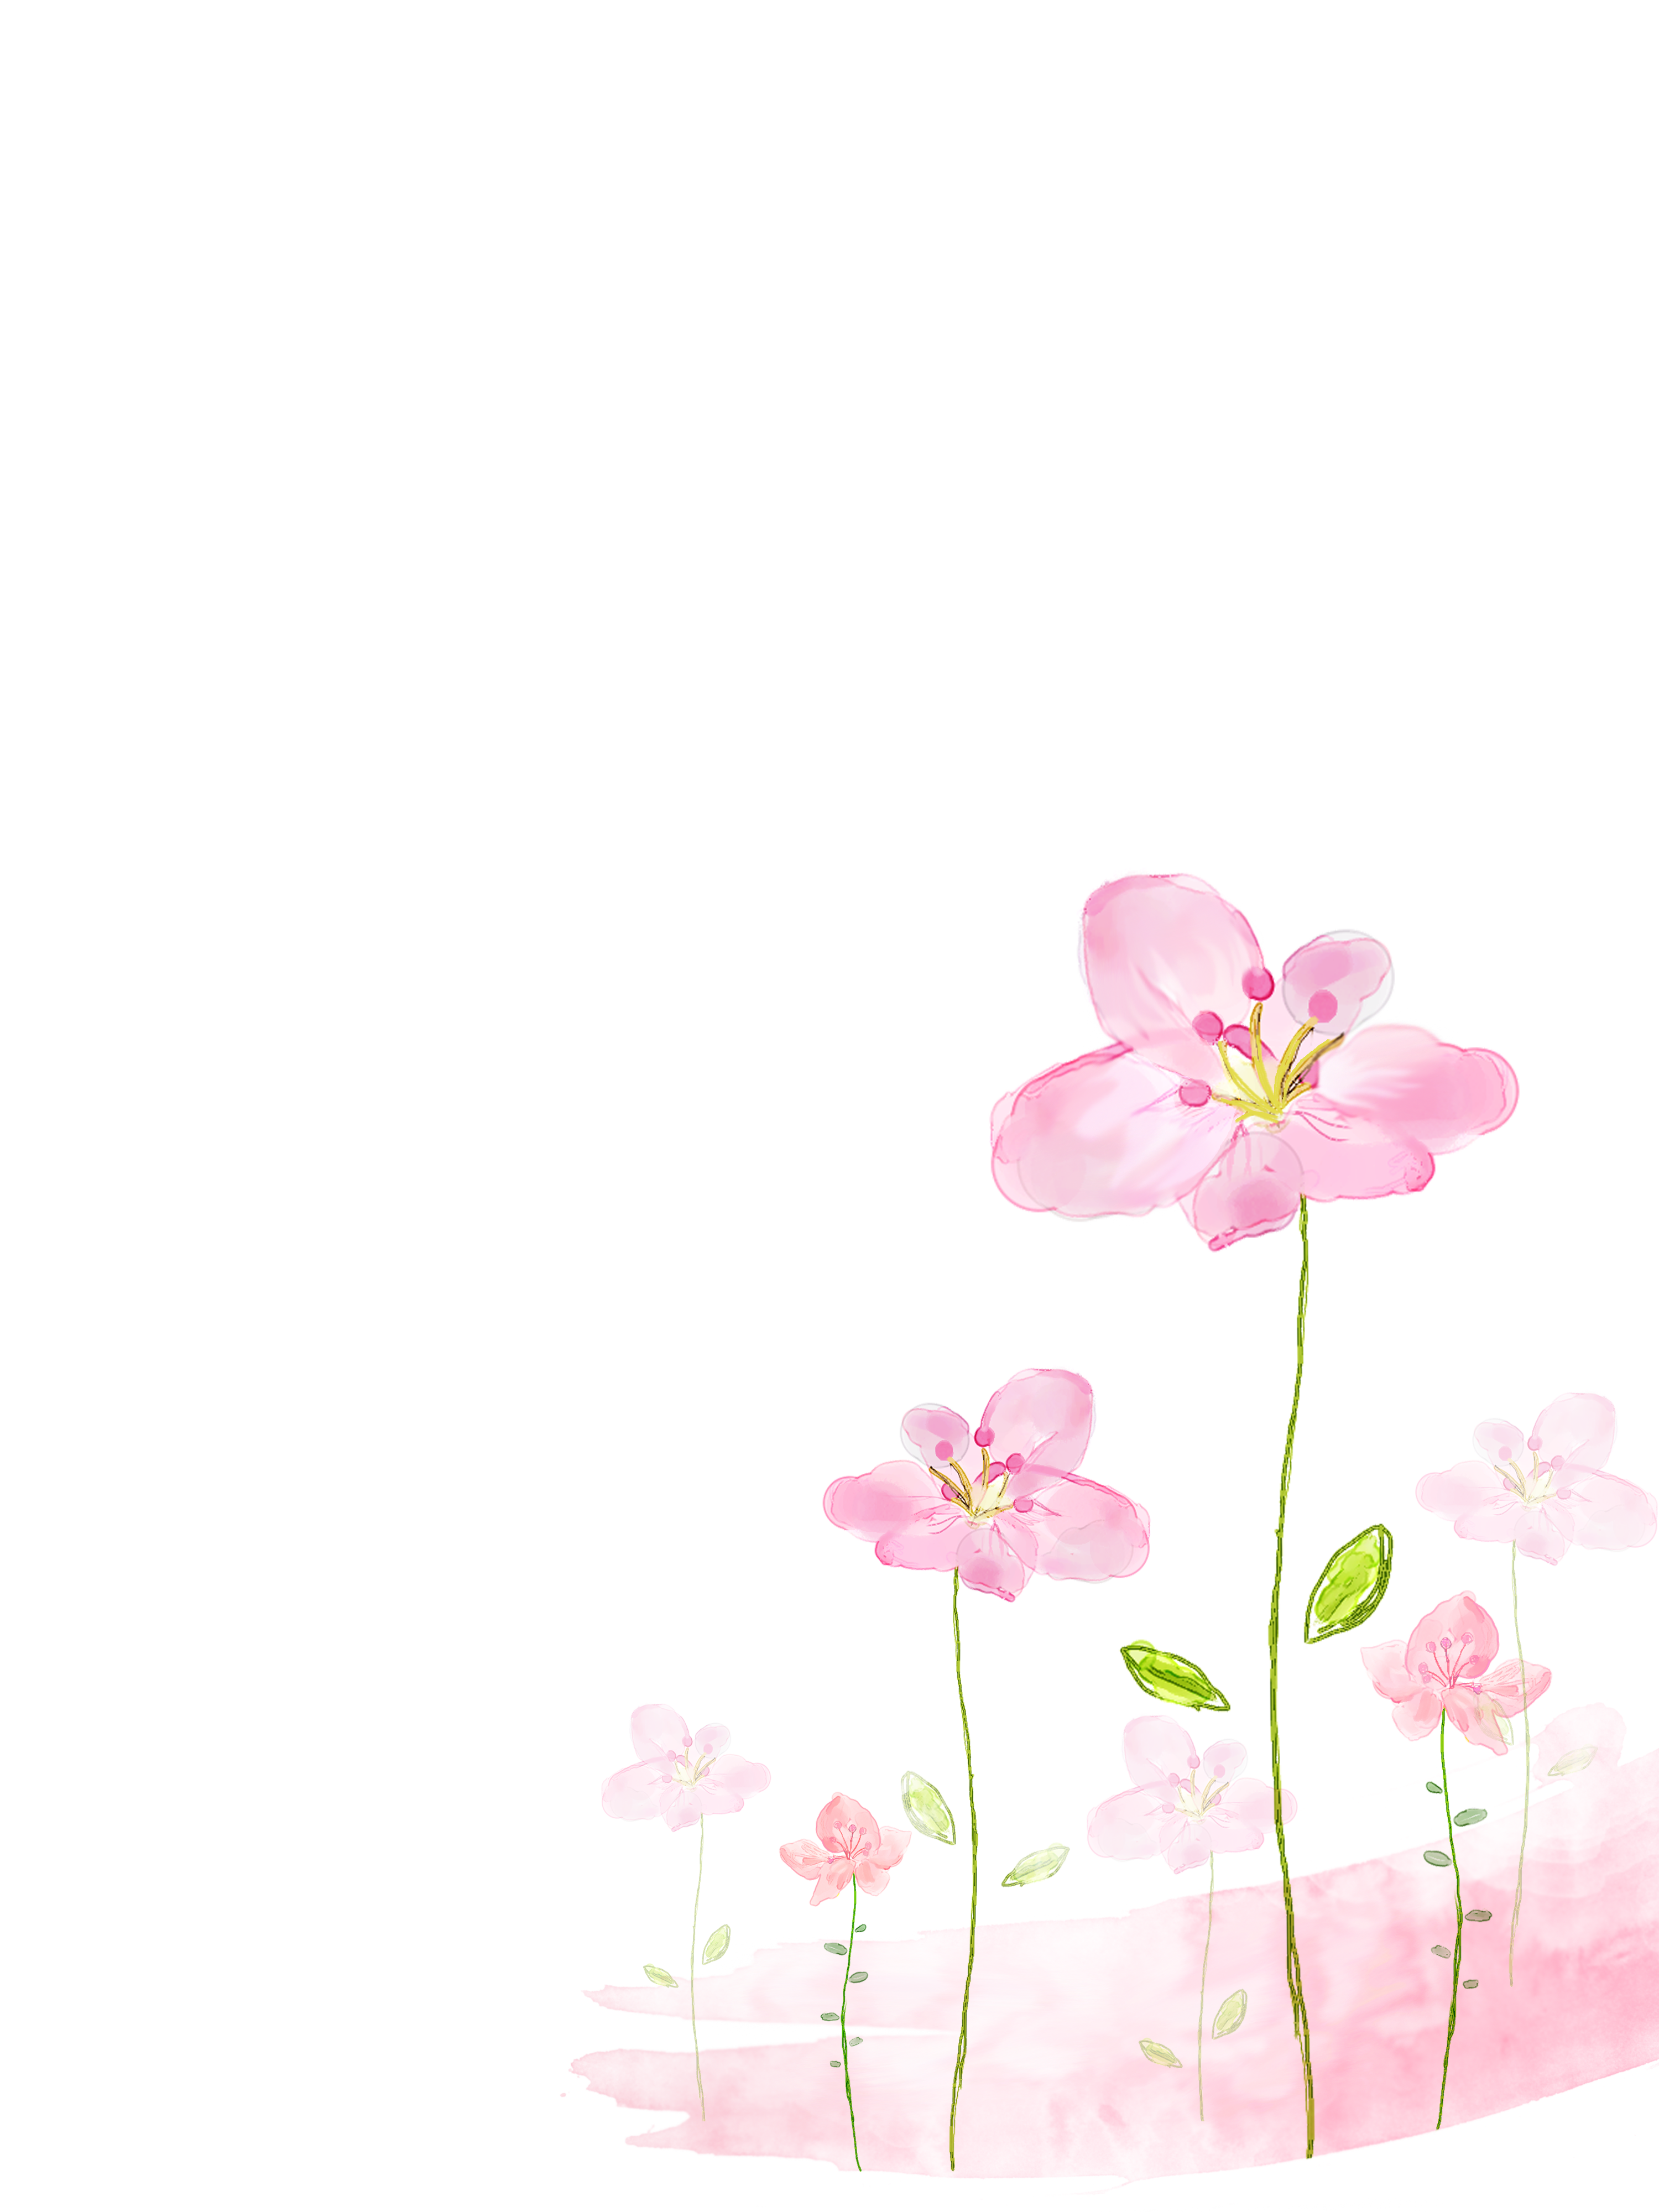 Free background pictures of flowers jpg royalty free Watercolor painting Flower - Pink flowers background 3000*4000 ... jpg royalty free